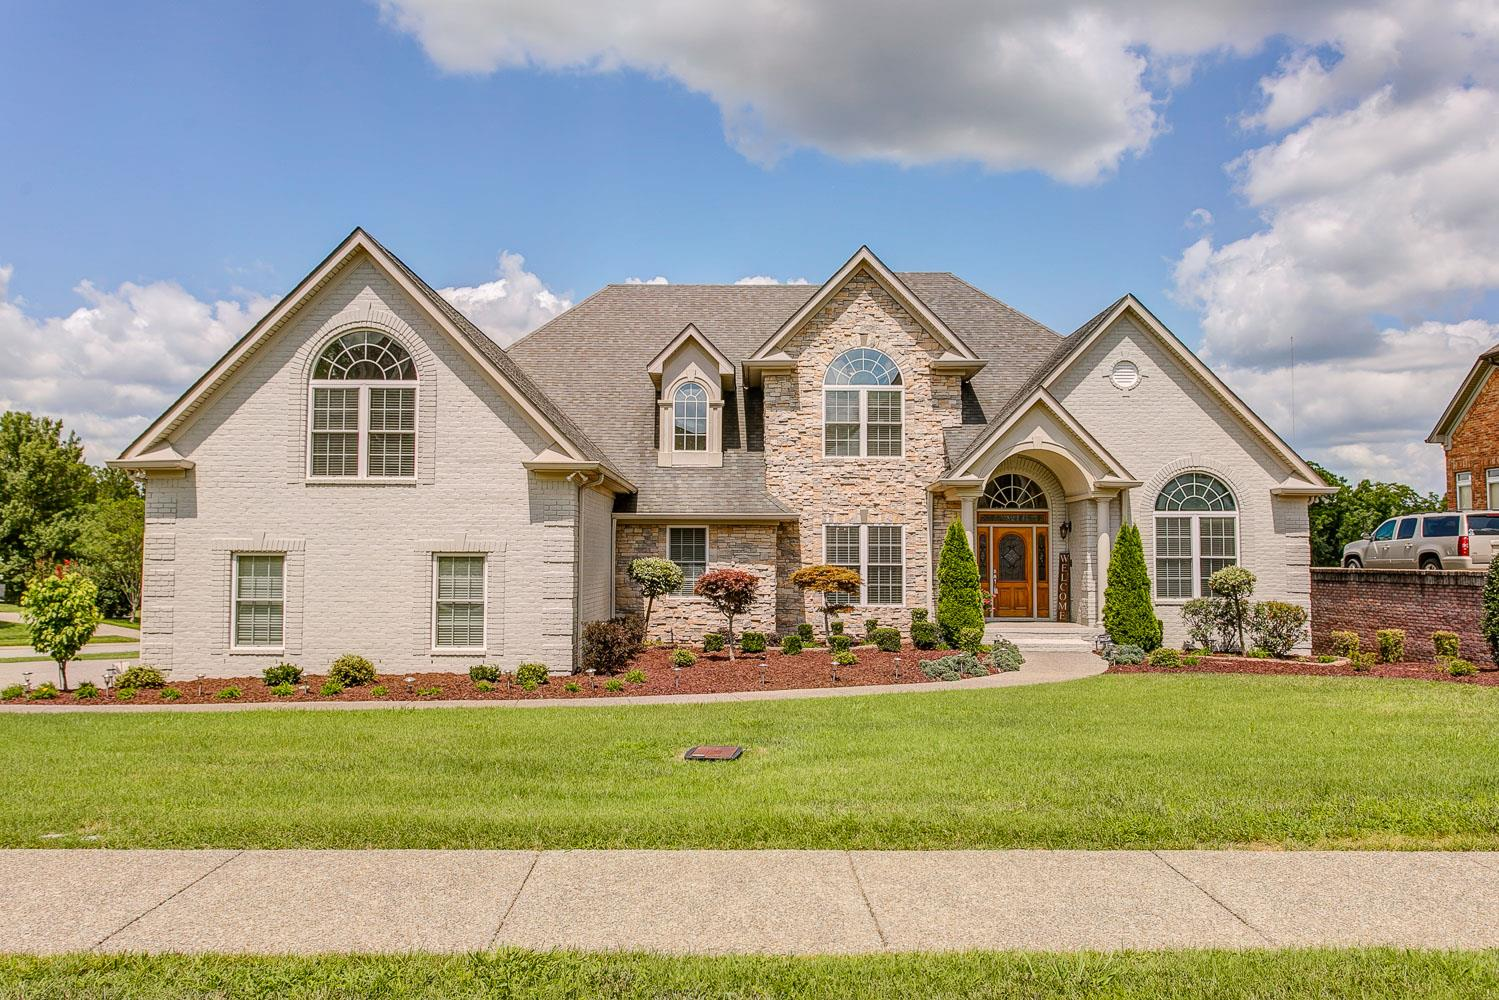 1076 Watkins Creek Dr, Franklin, TN 37067 - Franklin, TN real estate listing